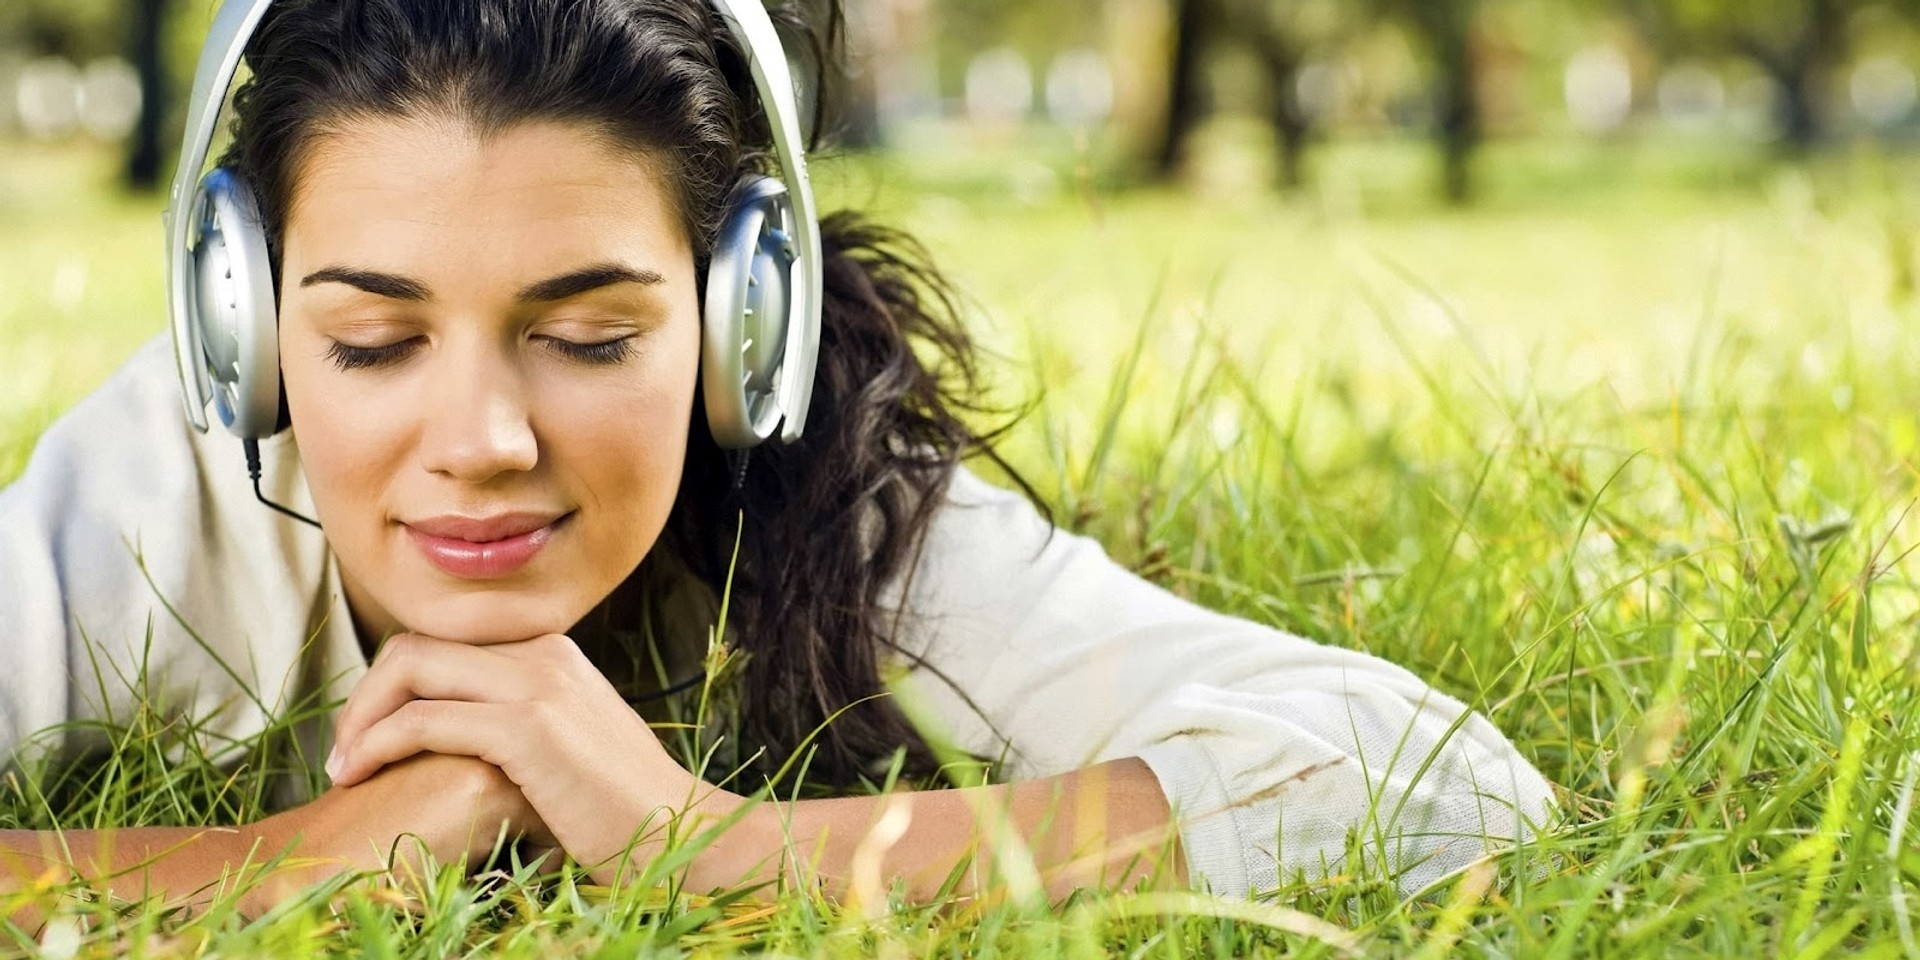 If you get goosebumps listening to music, a study shows you may be special